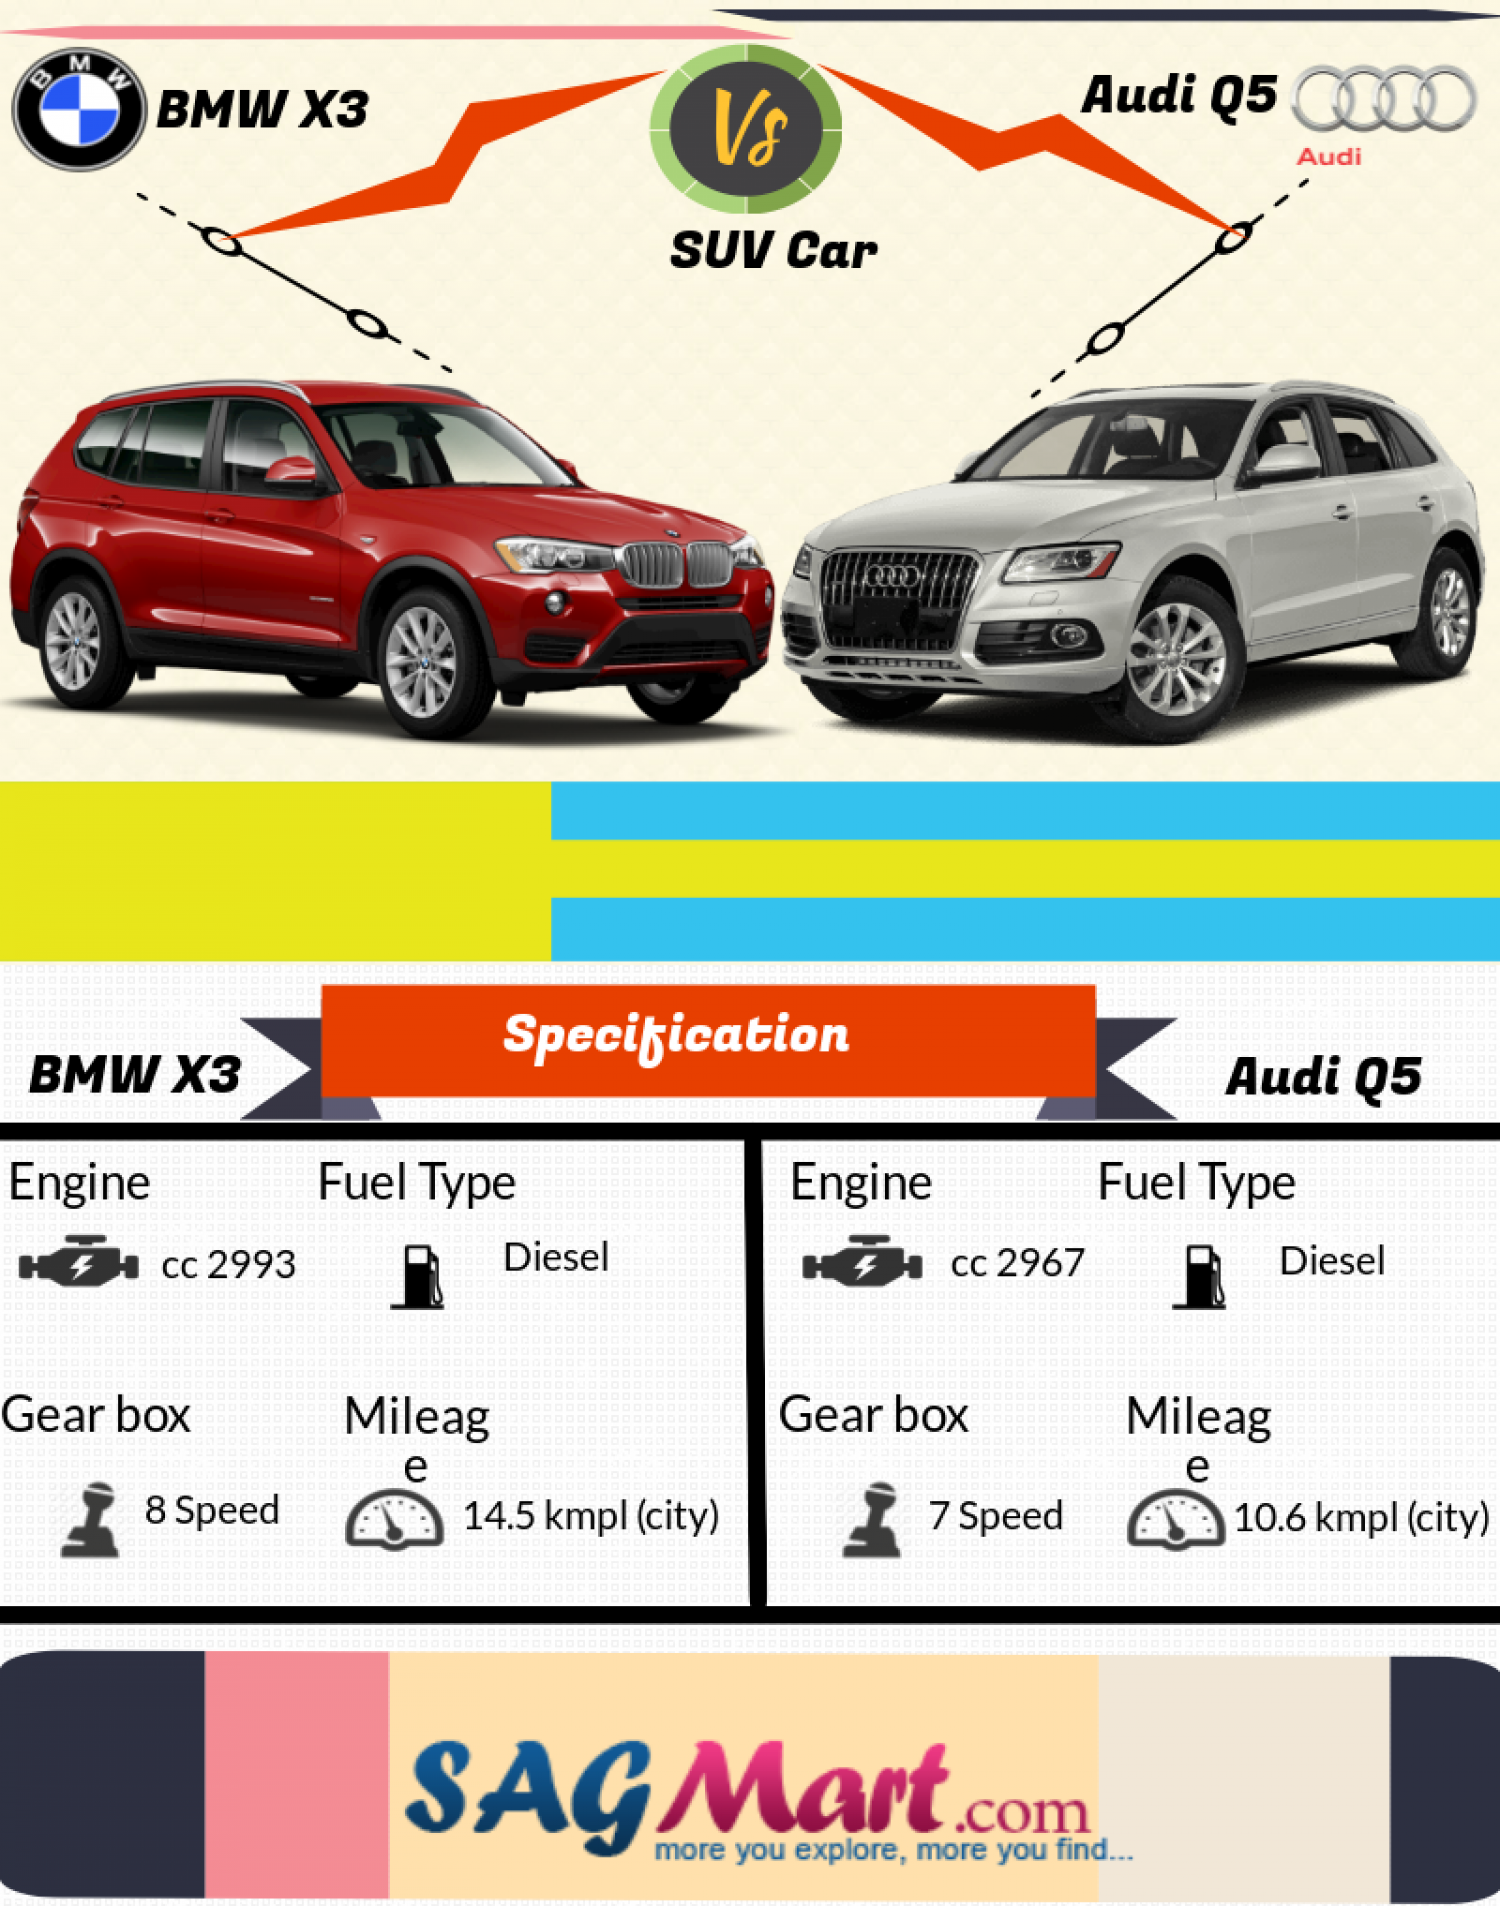 2016 Audi Q5 Vs Bmw X3 Compare Suv Cars Specification Infographic